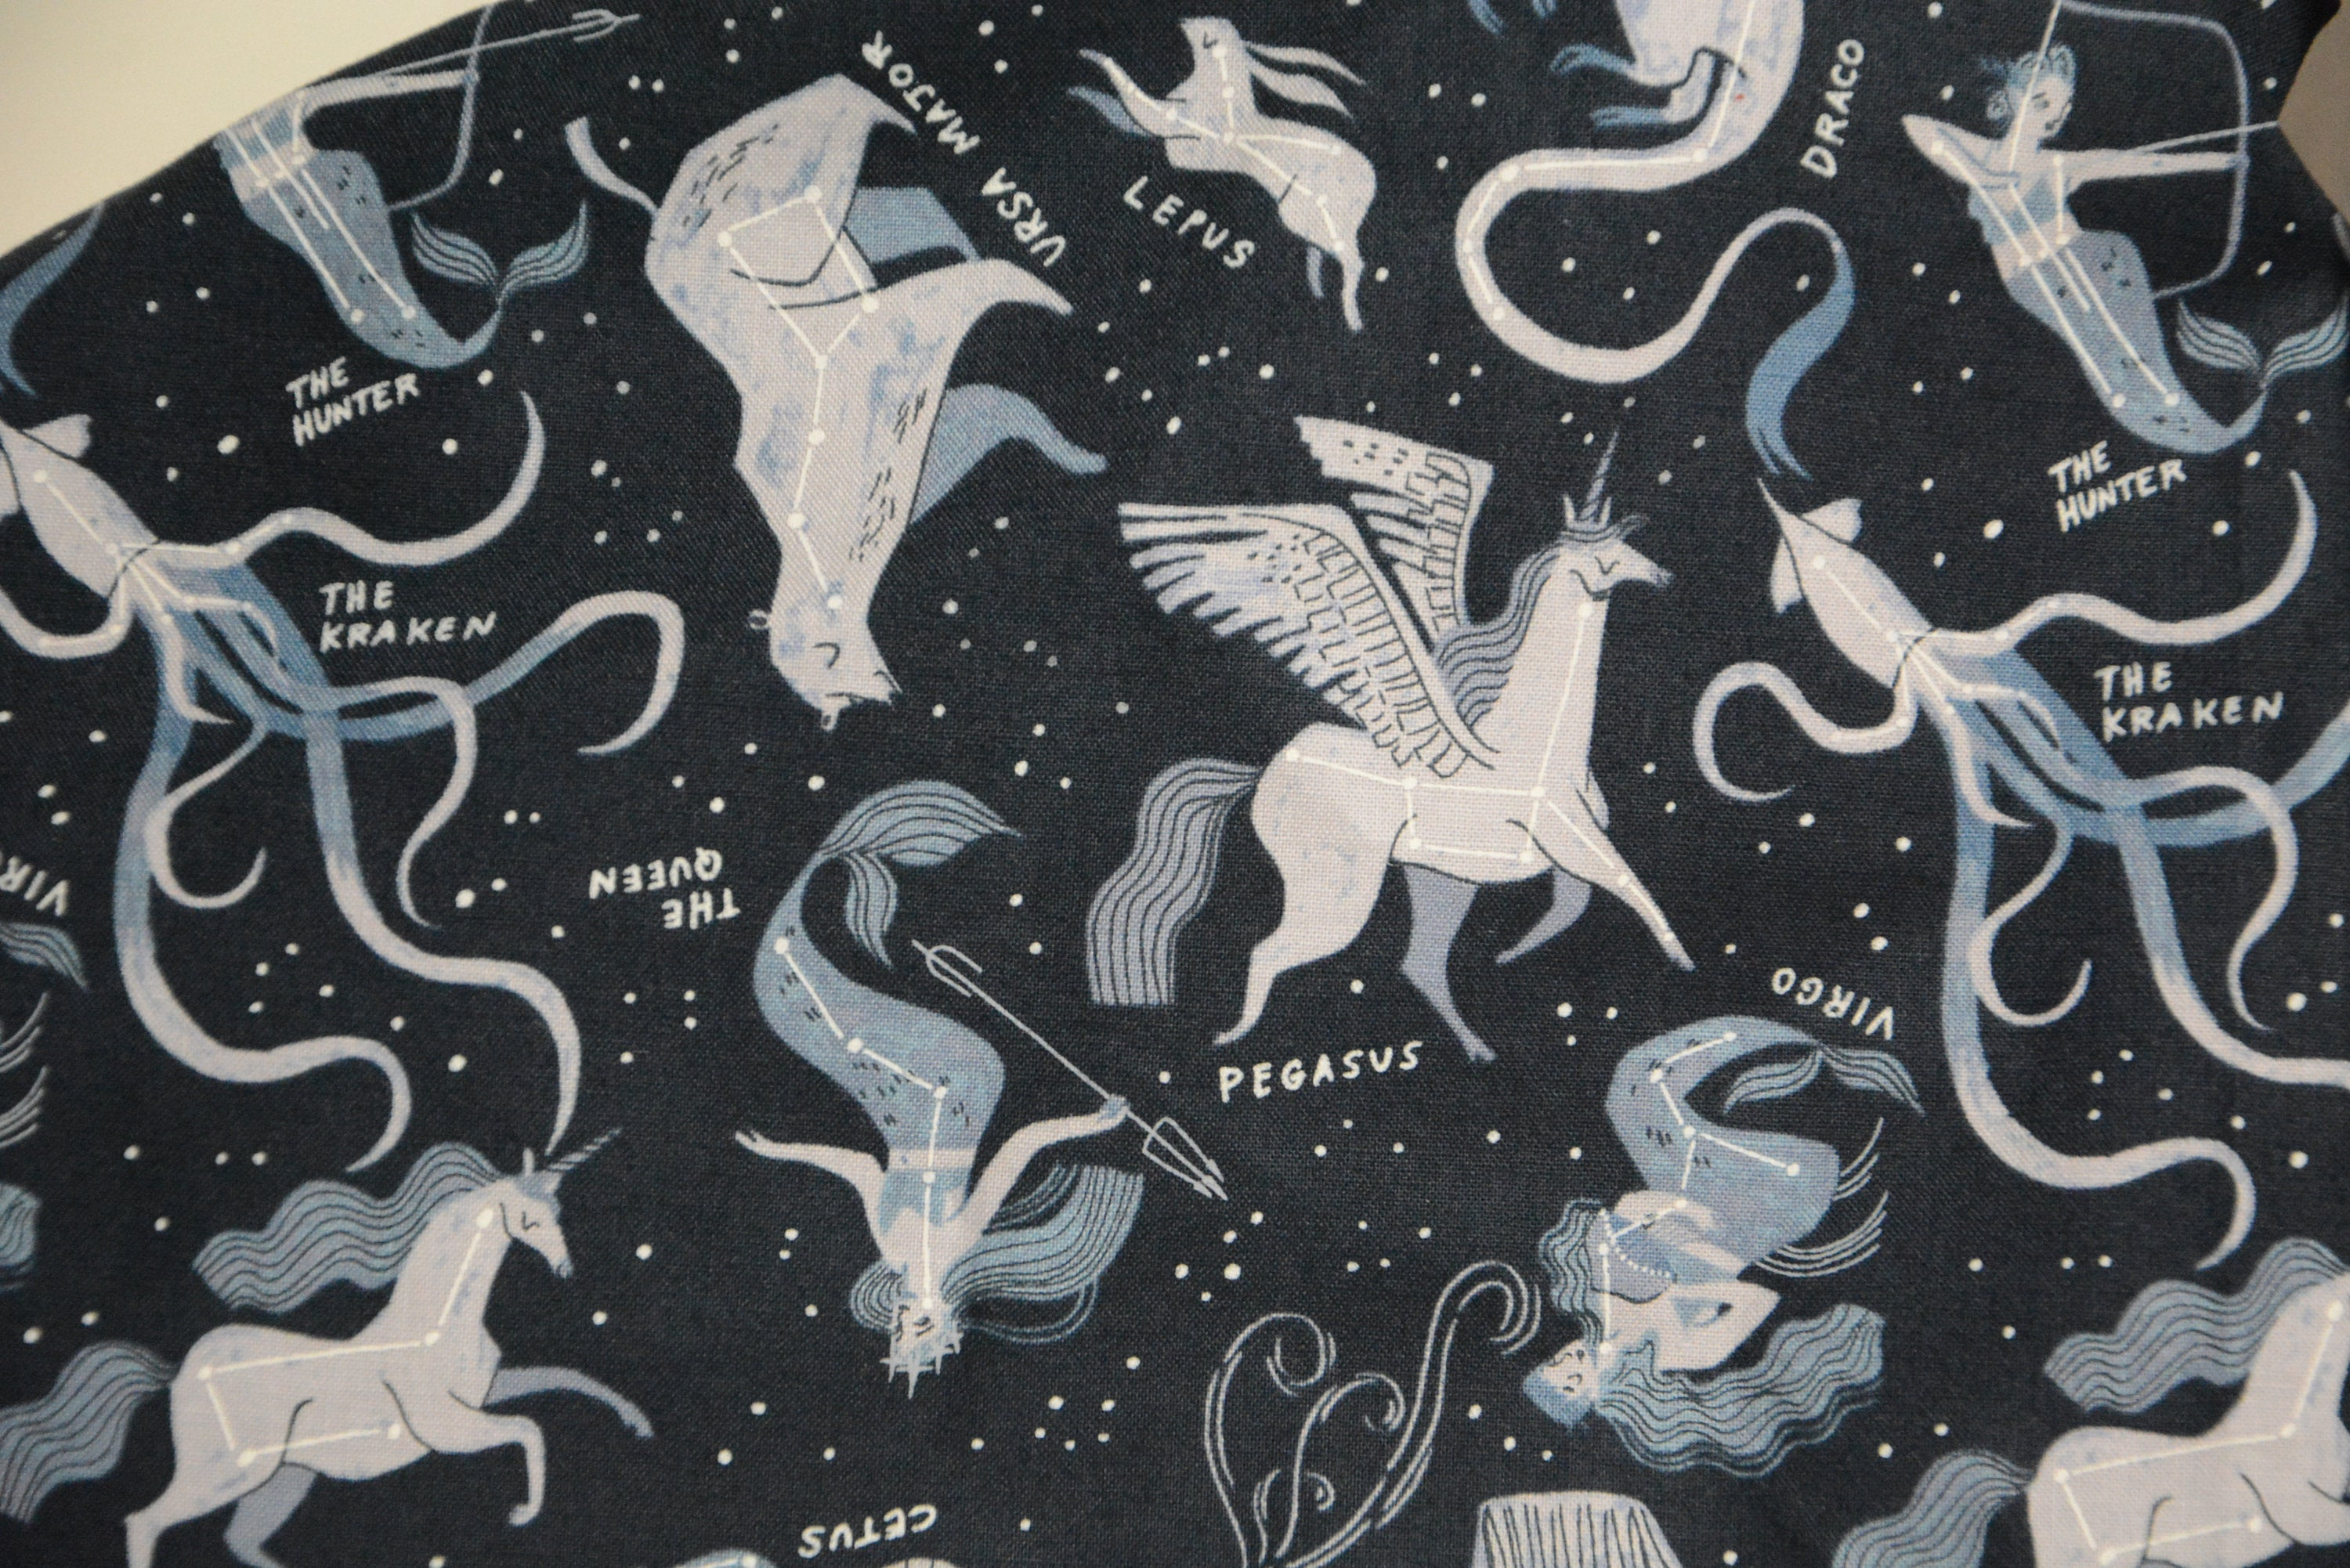 Mythical Constellations